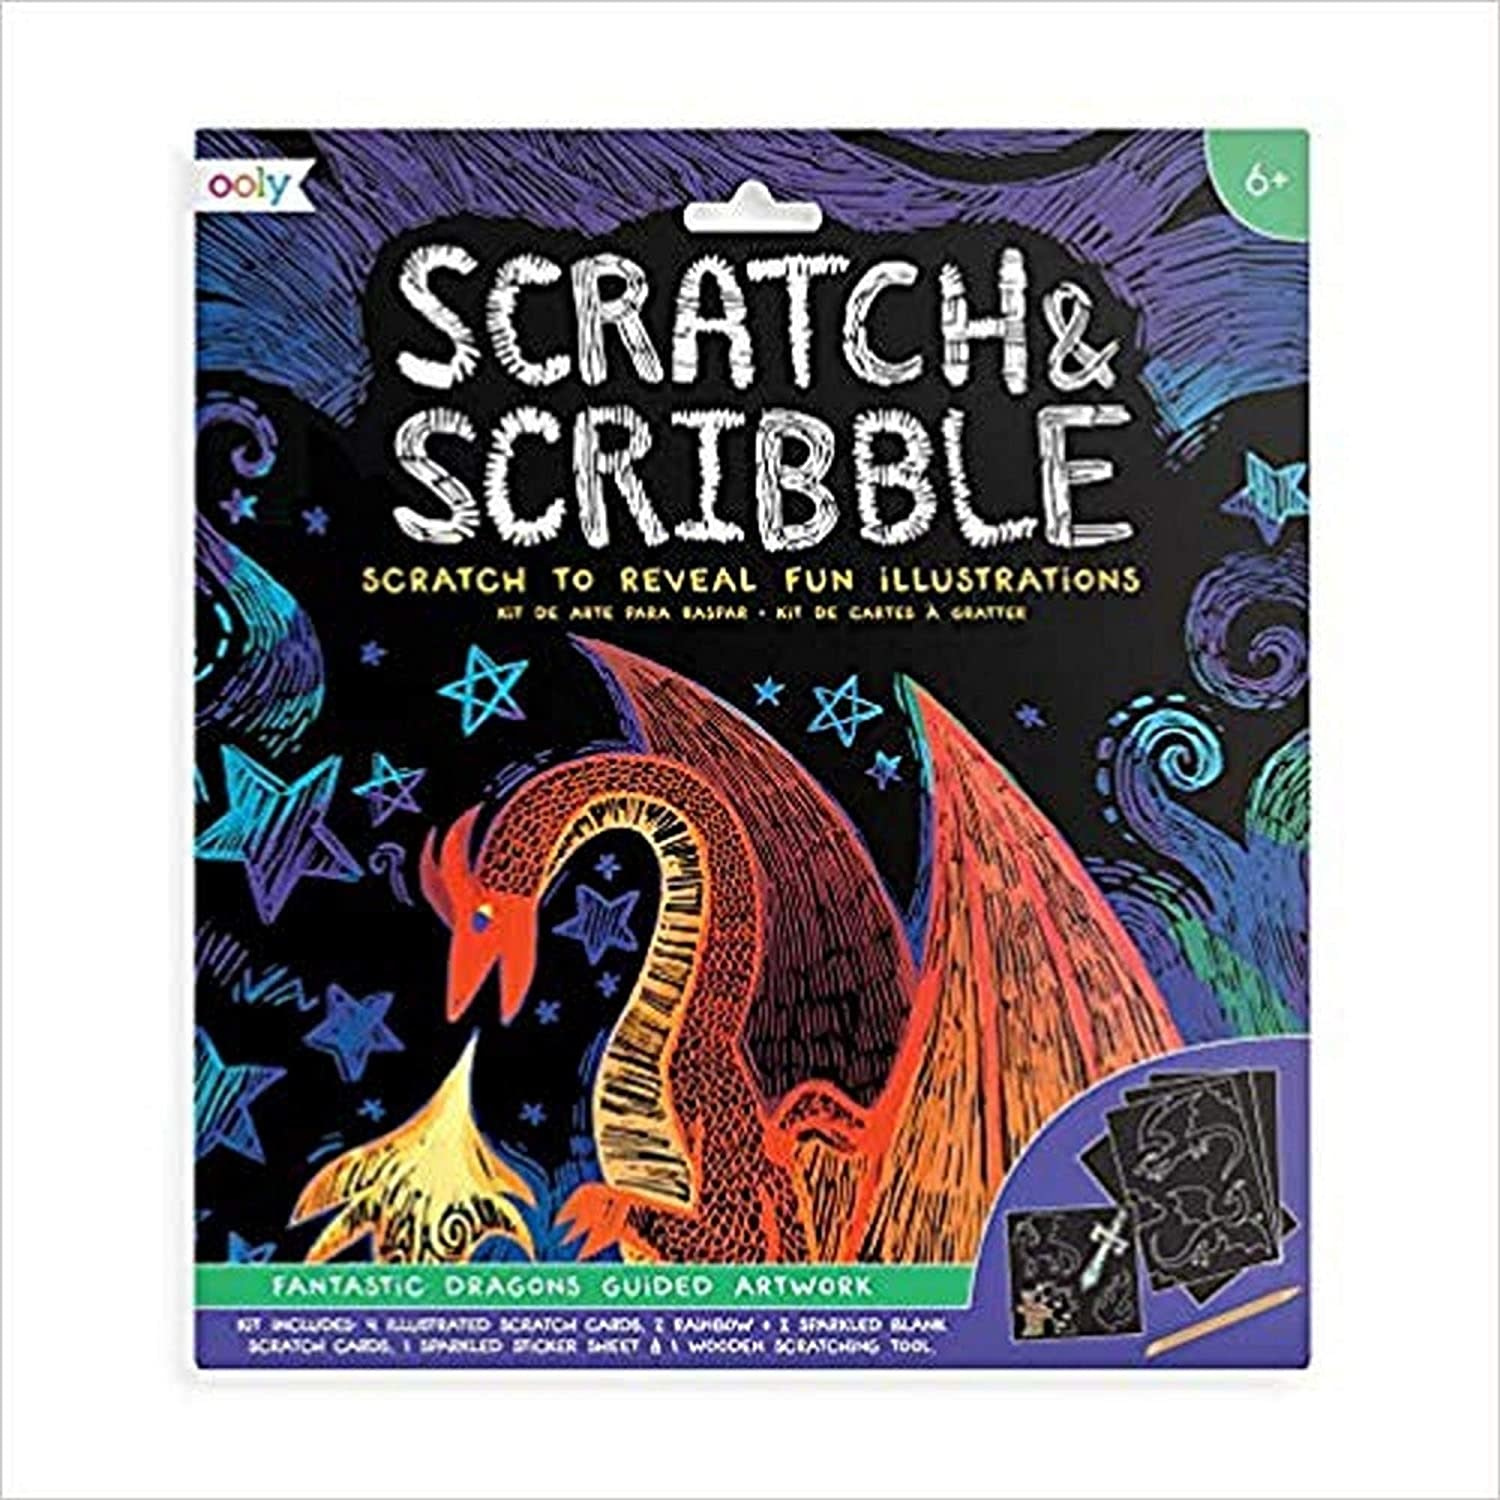 Scratch & Scribble  Fantastic Dragons Art Kit by Ooly